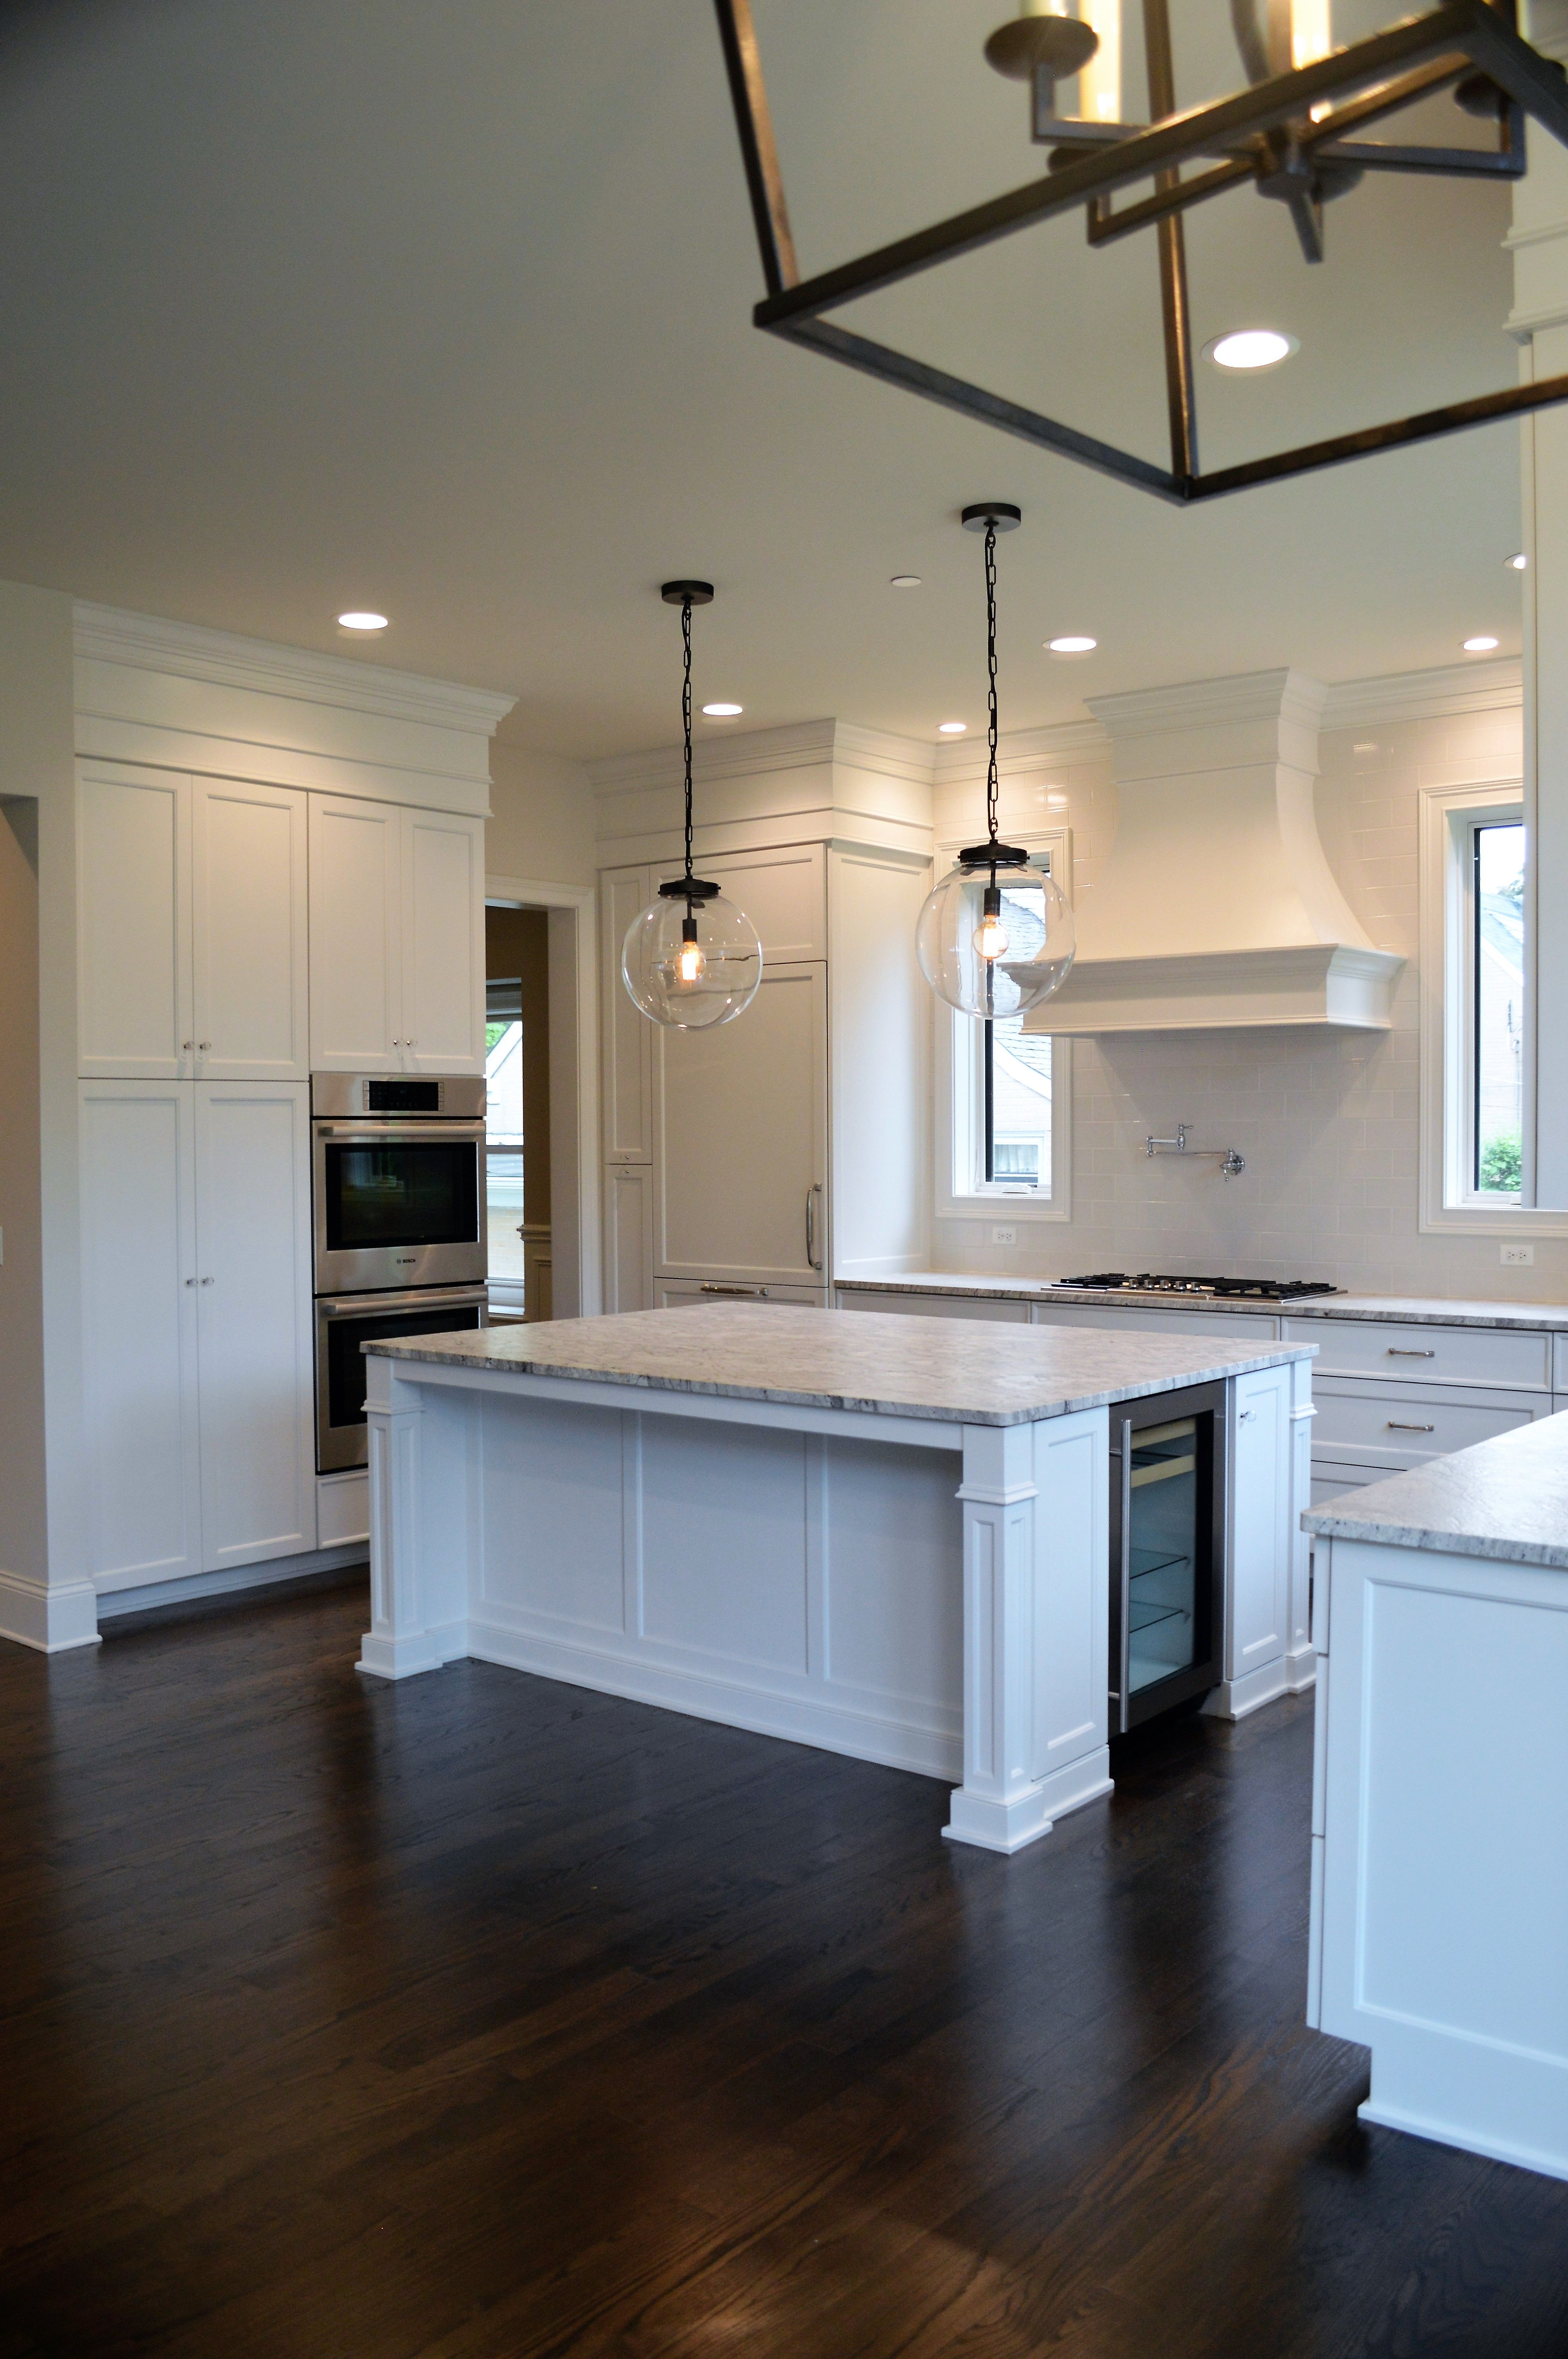 Stunning White Kitchen Cabinets With Matching Range Hood Over The Built In Pot Filler The Oversiz Gorgeous White Kitchen Kitchen Remodel Best Kitchen Lighting